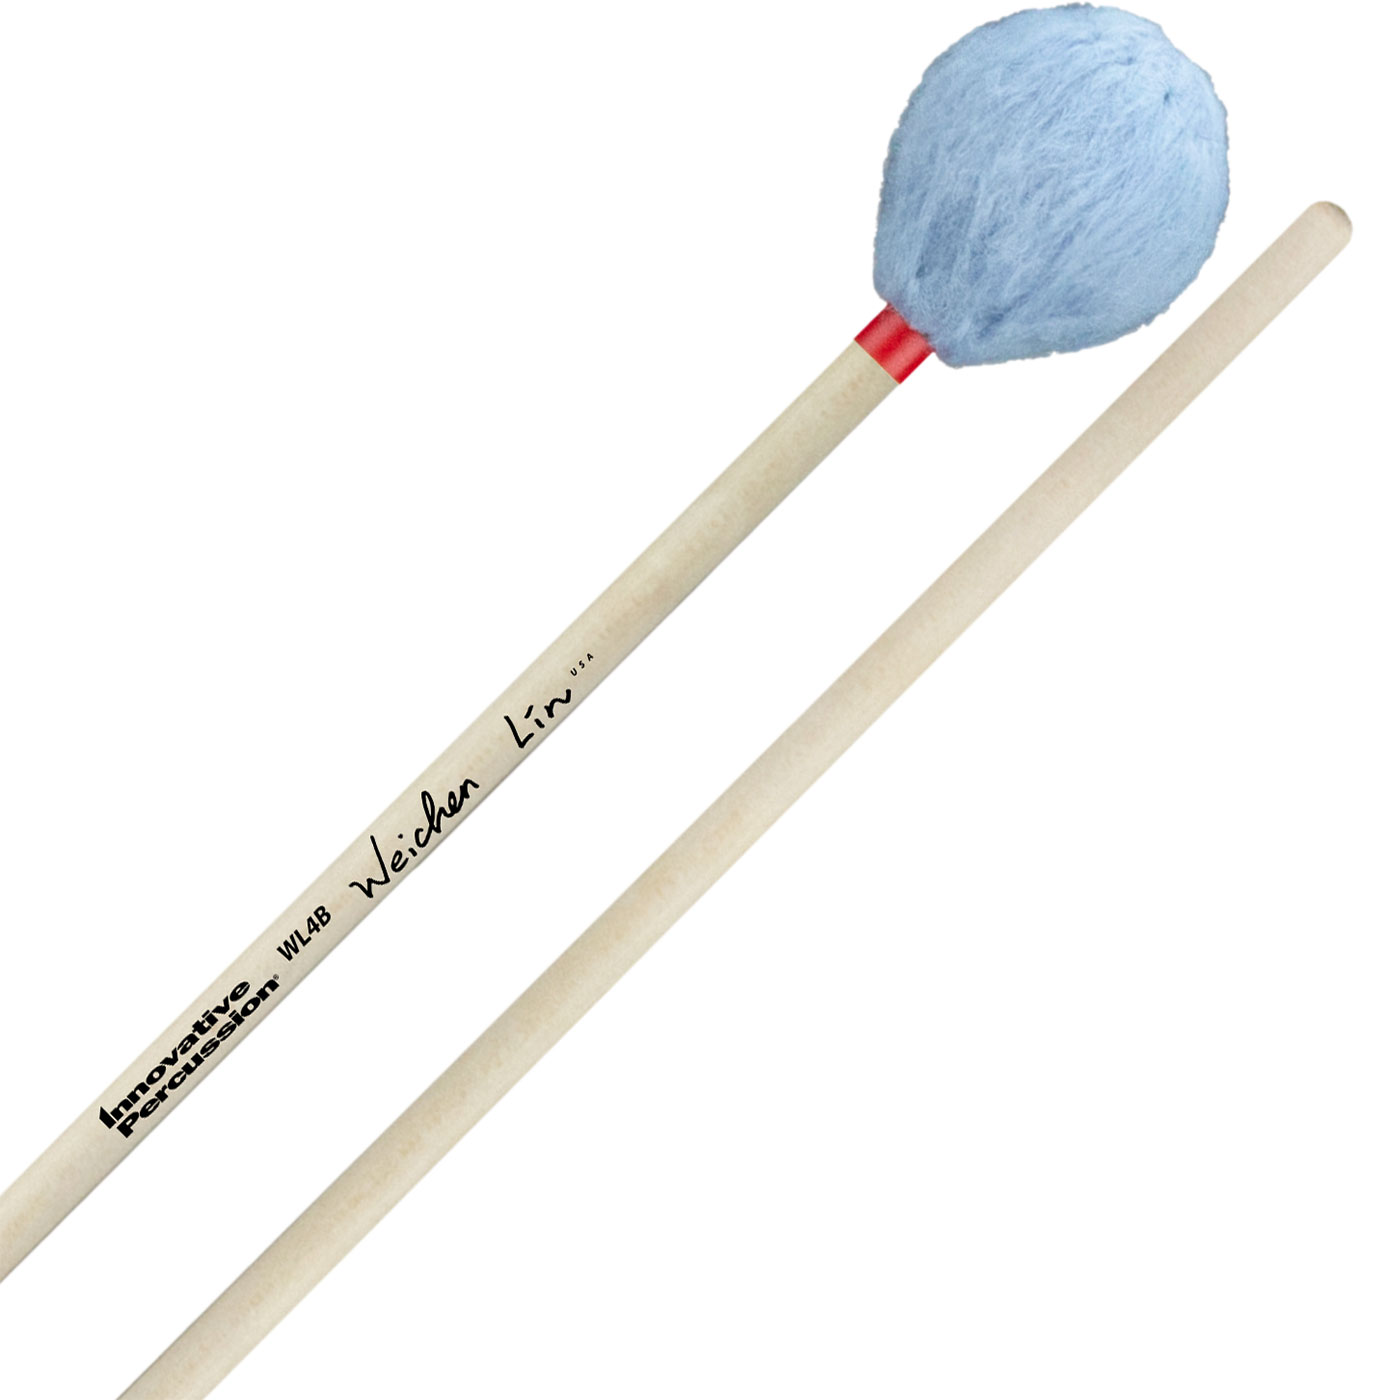 Innovative Percussion Wei-Chen Lin Signature Medium Marimba Mallets with Birch Handles